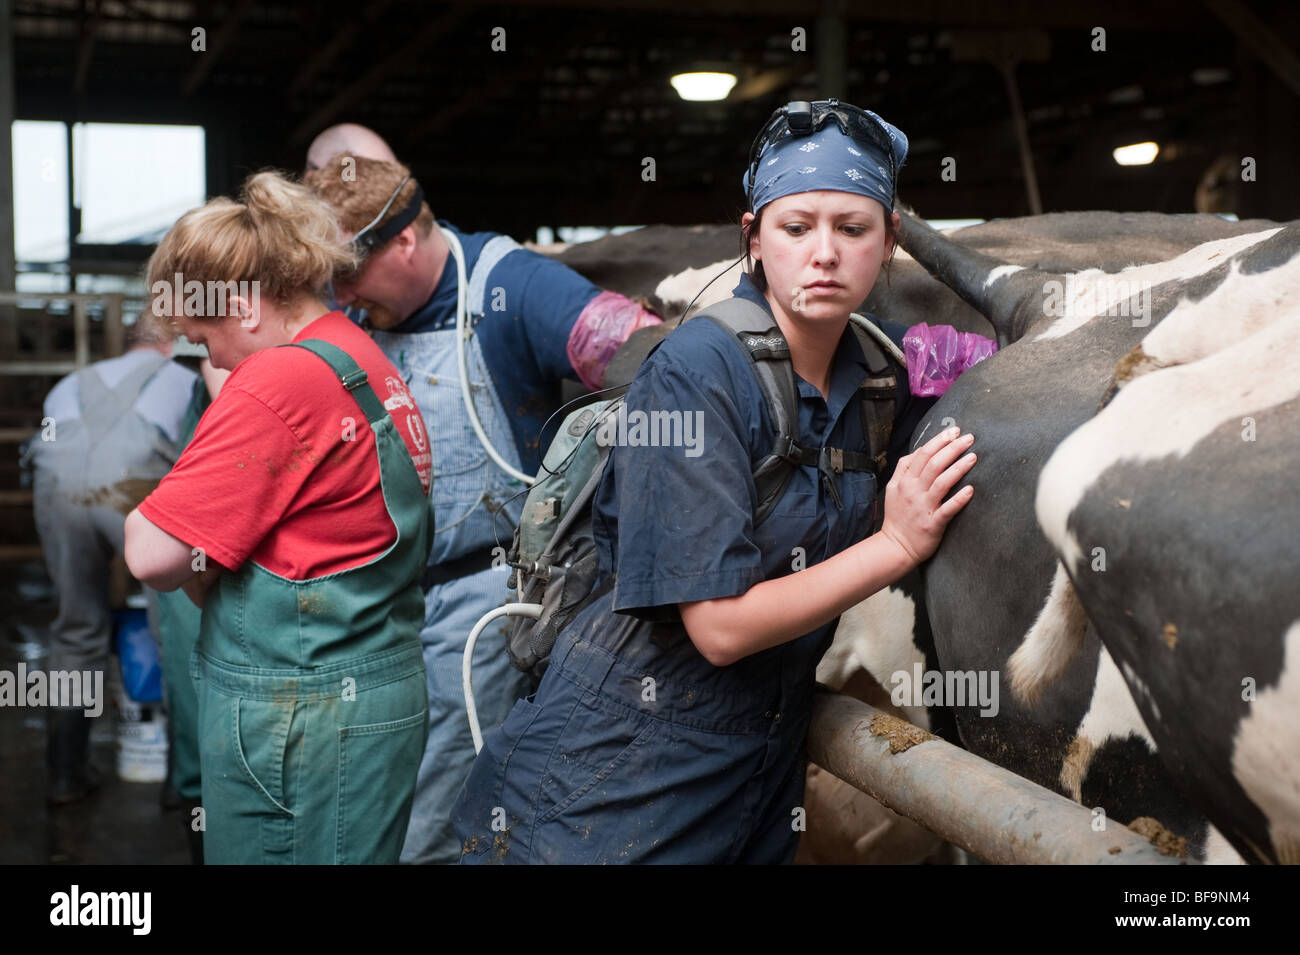 Vets pregnancy testing dairy cows using ultrasound equipment